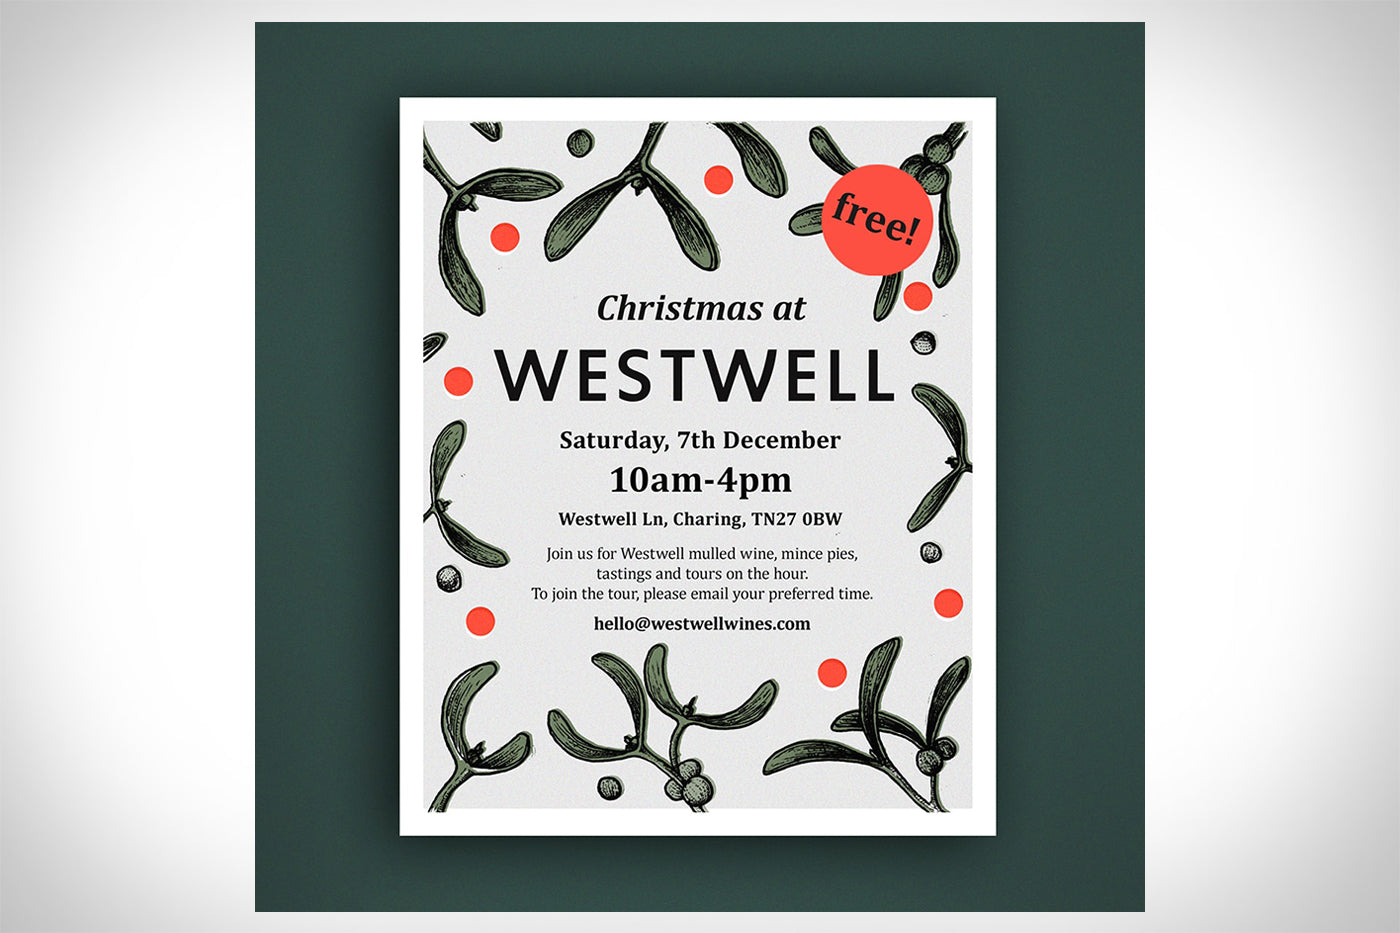 Christmas at Westwell<br>Saturday, 7th December